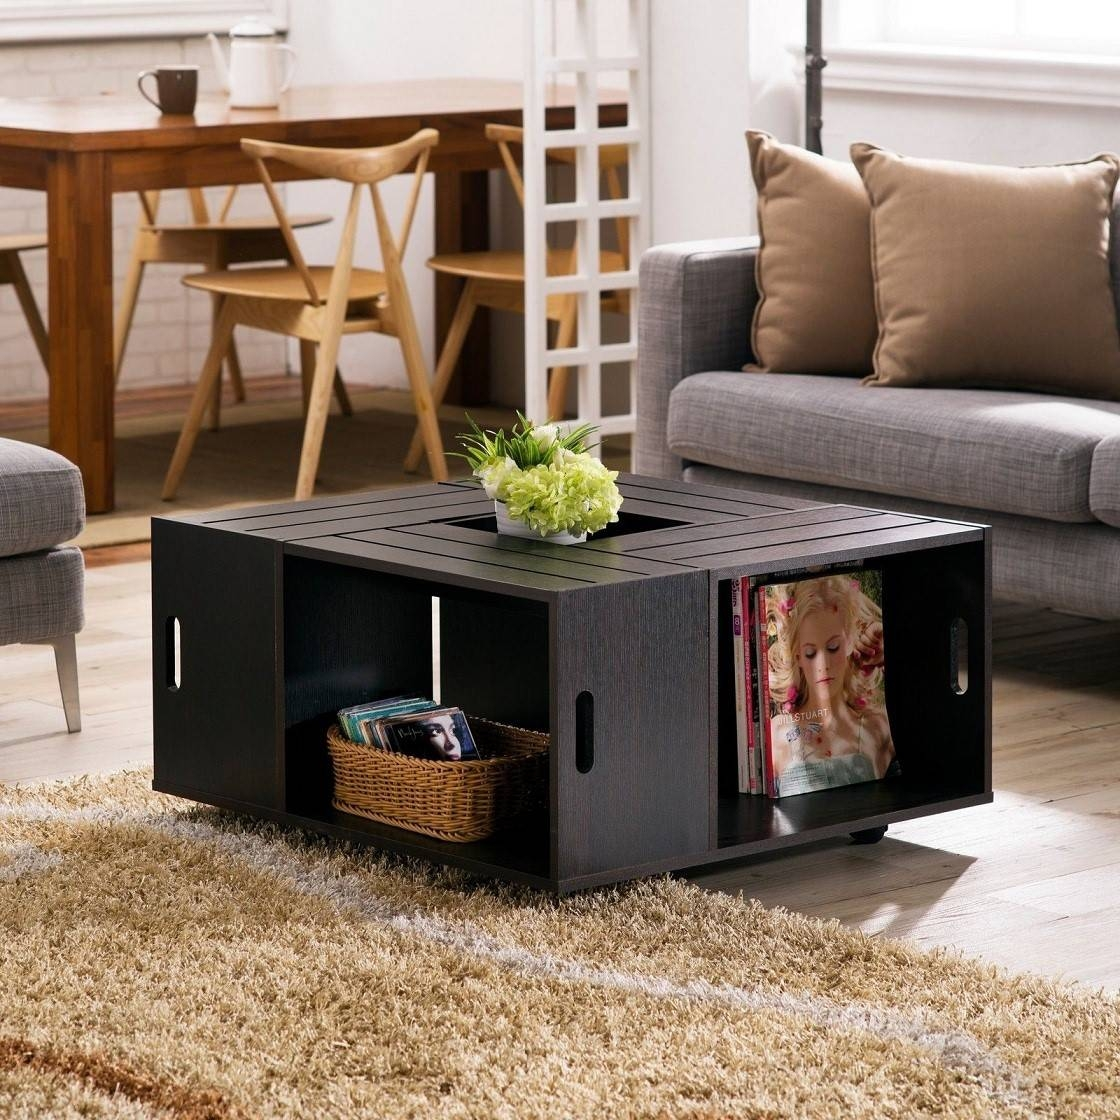 Cool Coffee Tables On Modern Coffee Table And Trend Small Coffee Within Small Coffee Tables With Storage (View 22 of 30)